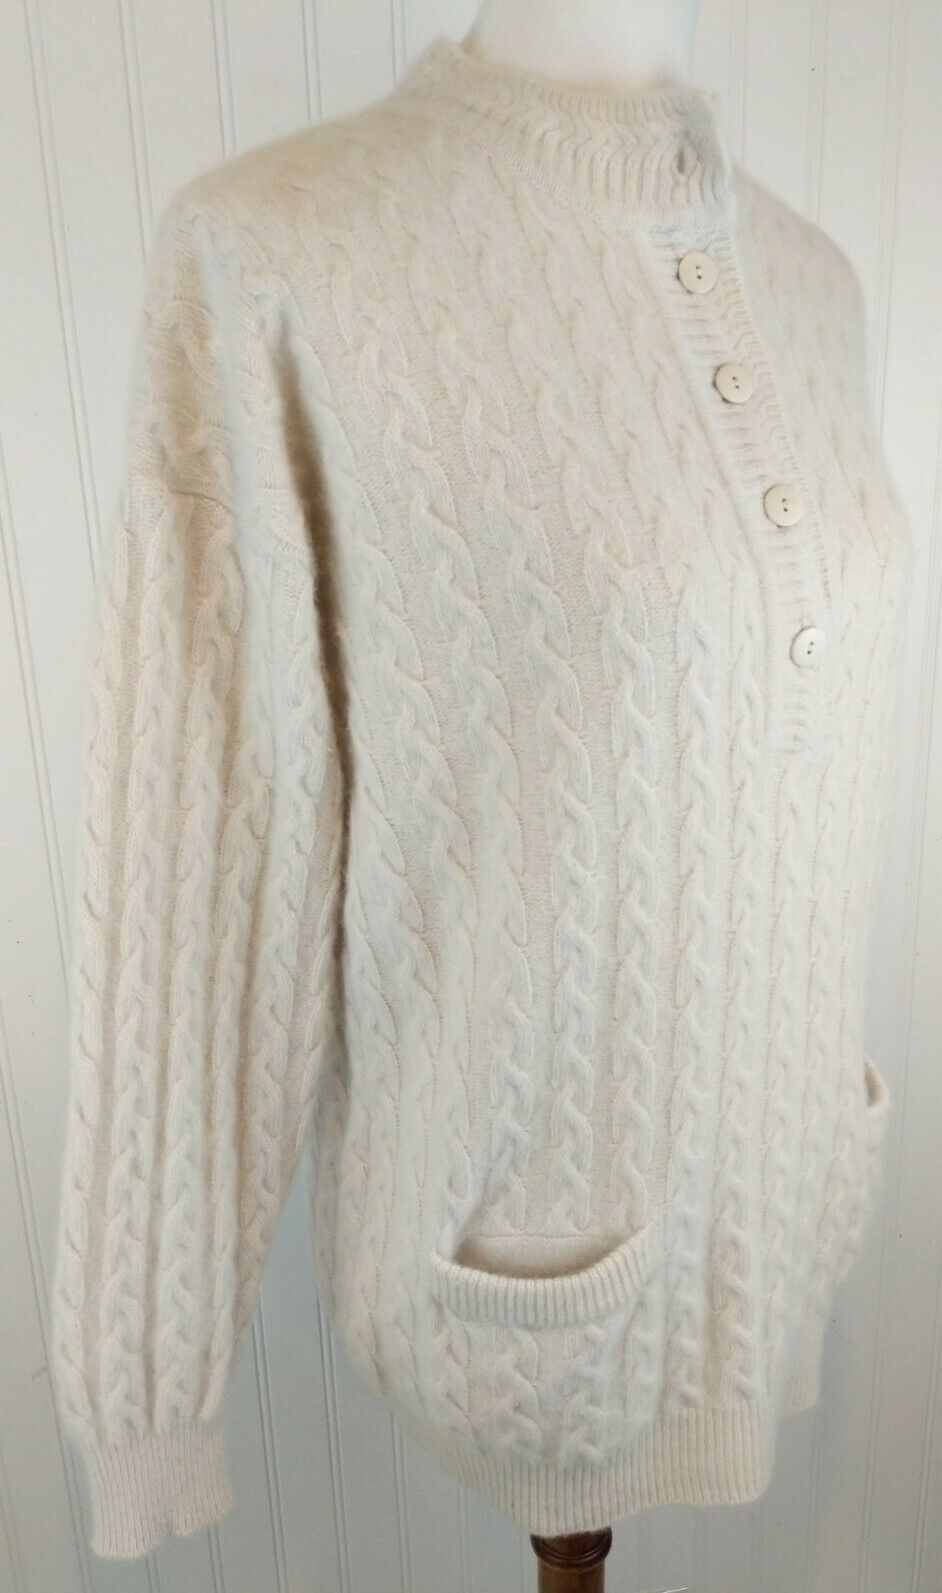 Vintage Angora Henley Pullover Sweater Cable Knit Soft Fuzzy Tunic S Mock Neck